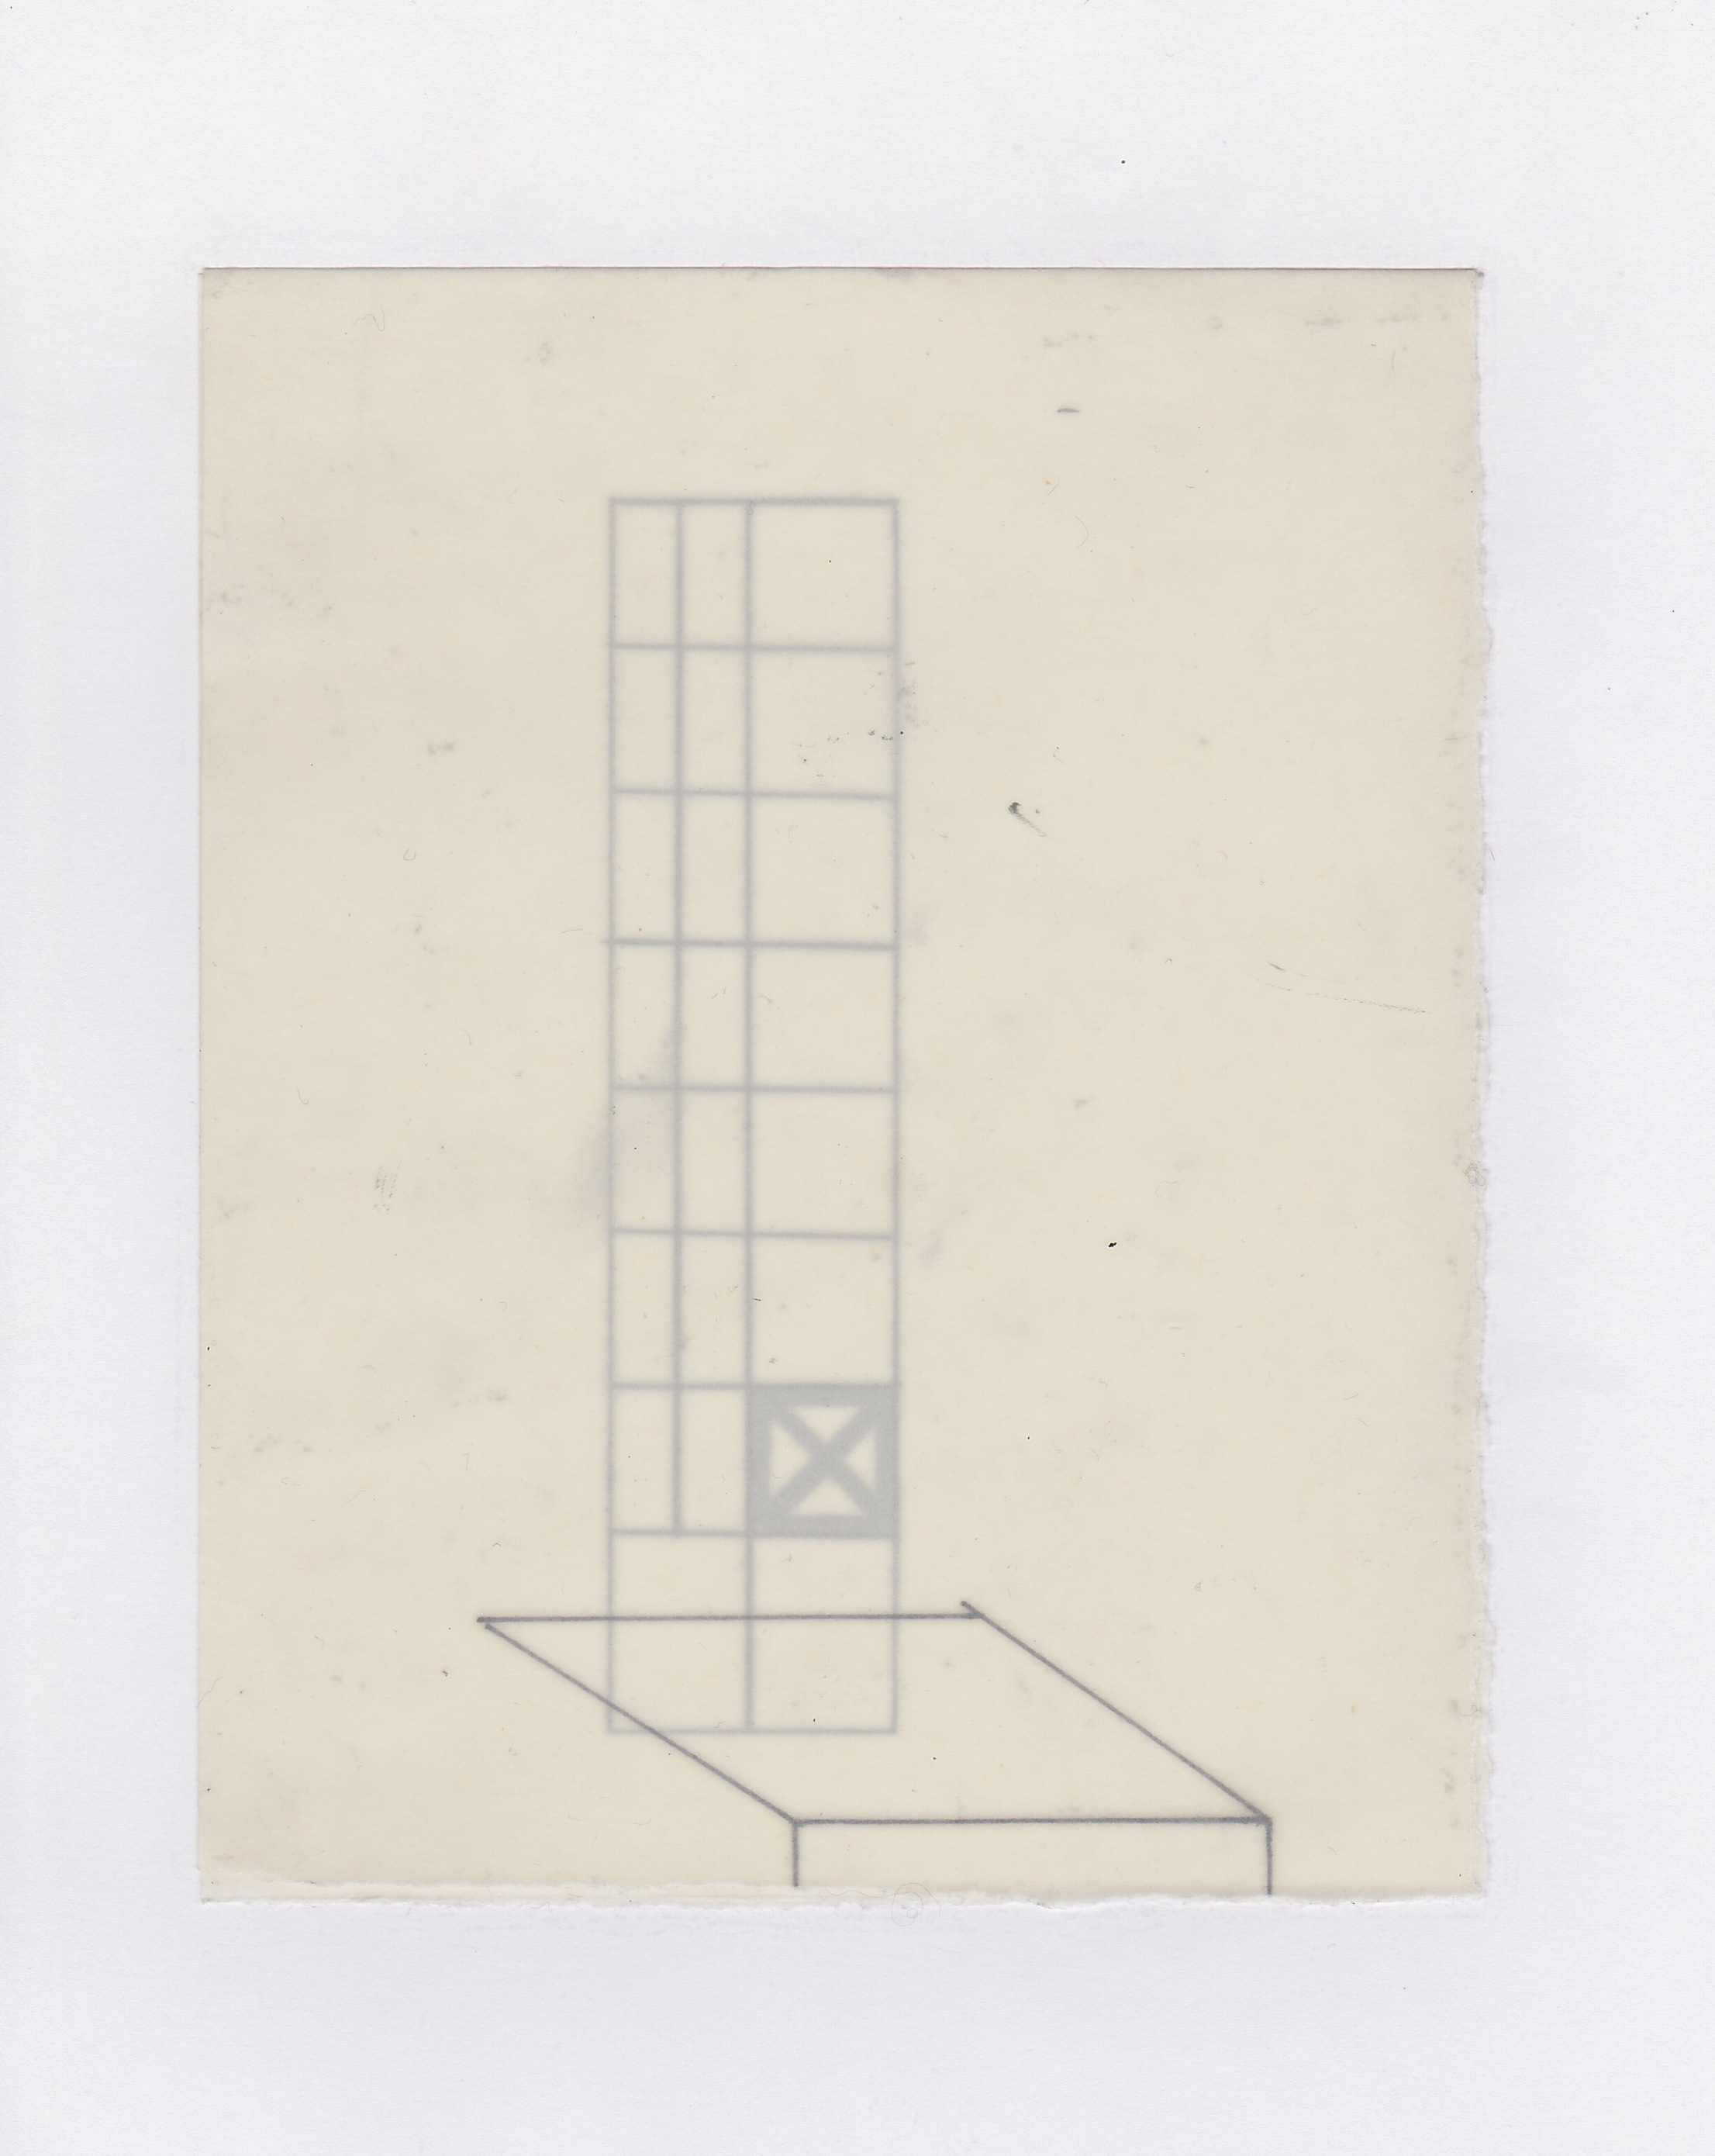 Untitled (the city, observations 05)  Pencil on oiled fabriano paper.  140mm x 180mm  December 2013.